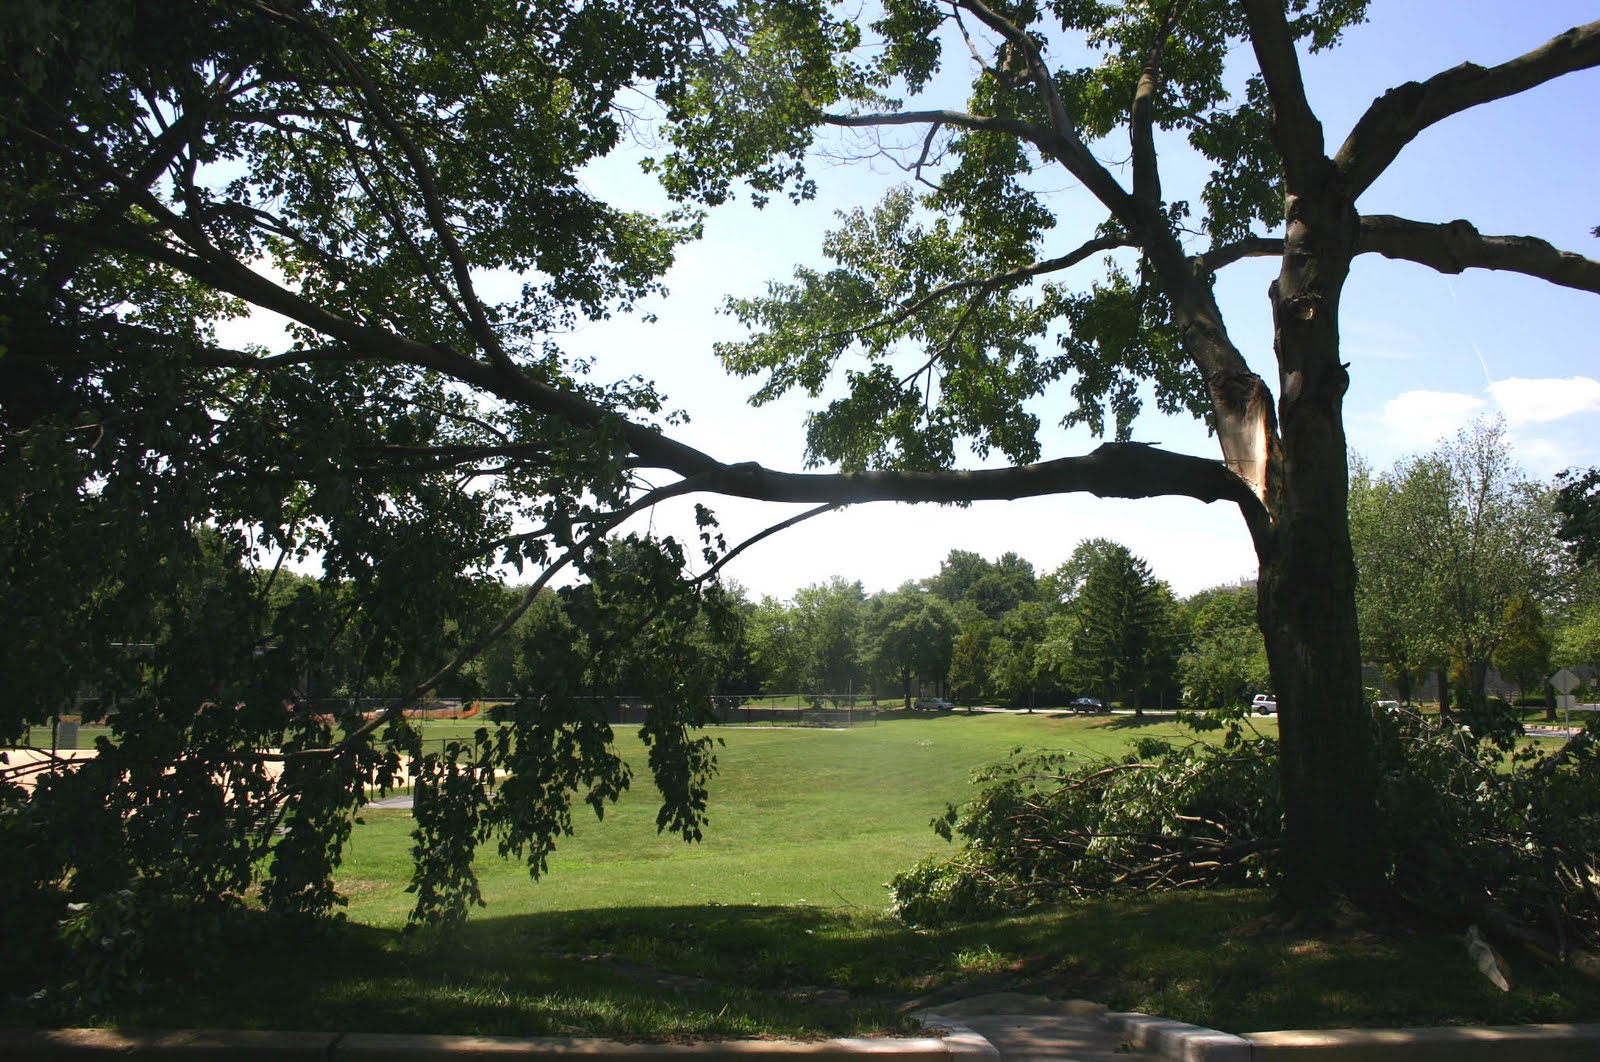 storm damaged trees to be cleaned up in Cleveland